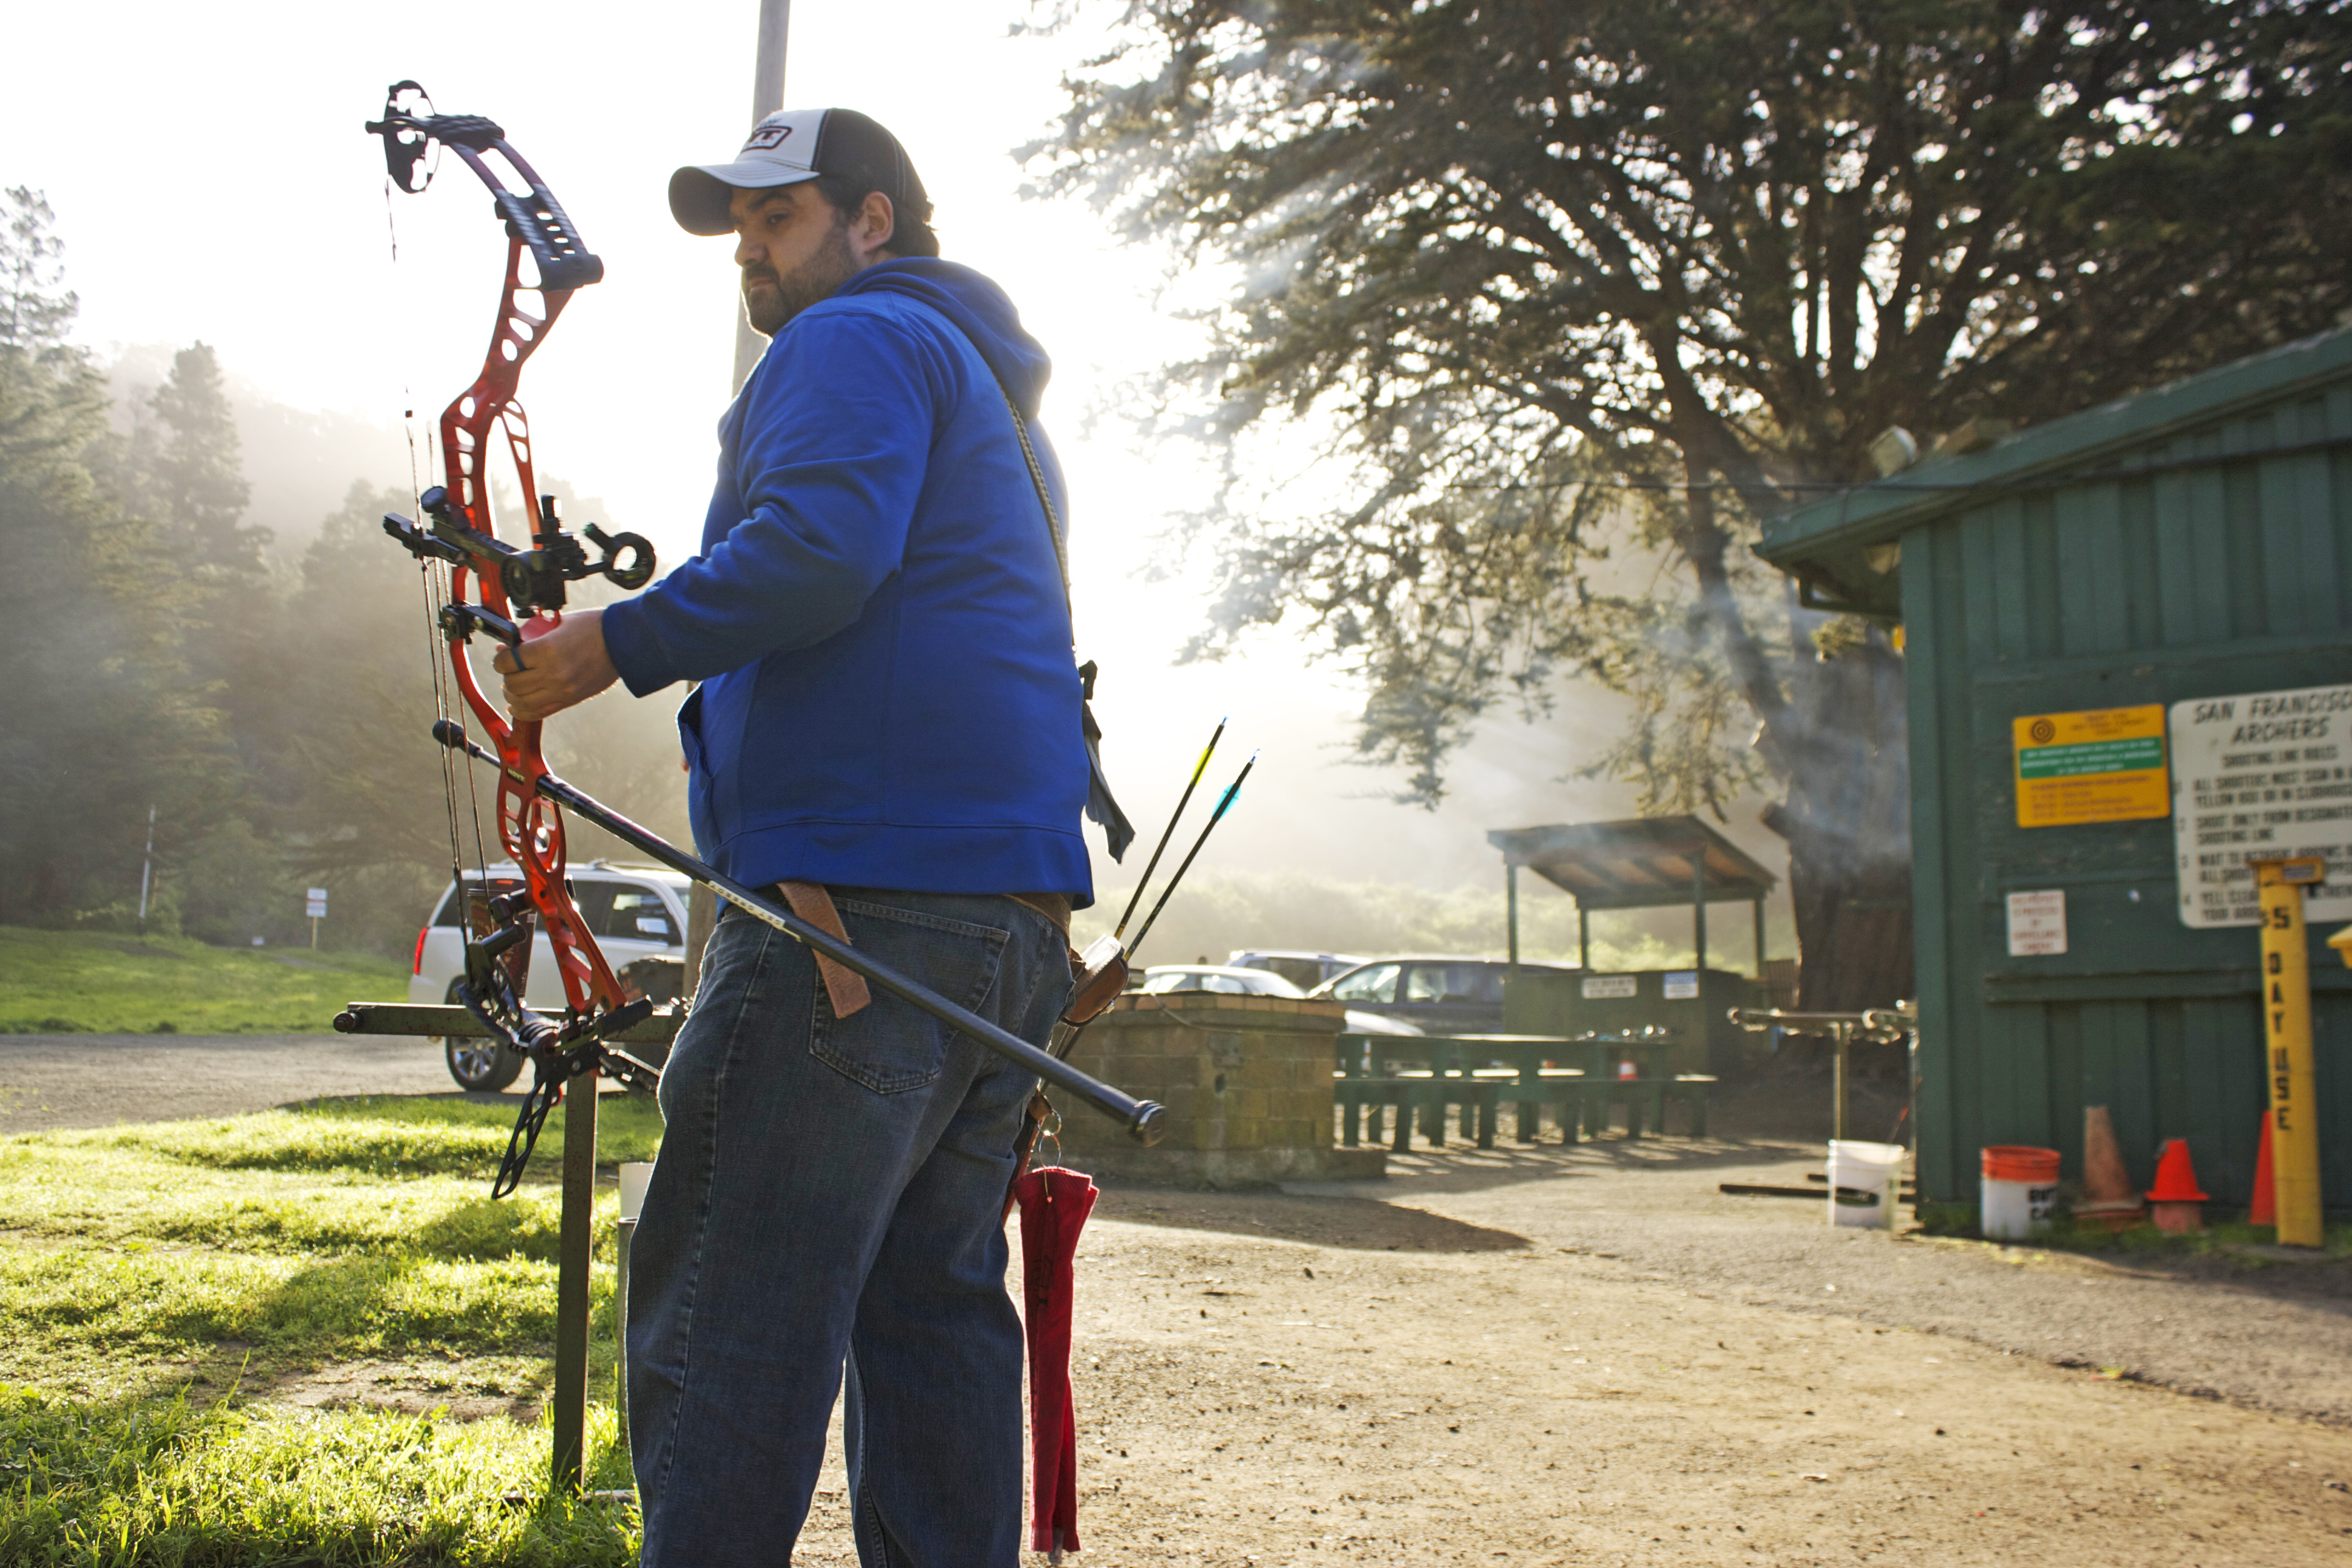 Rudy Sandoval Jr. stands in the morning sunlight as he prepares to begin target practice on March 25, 2016. Sandoval trains everyday at the San Francisco Archery Range in Pacifica. (Photo by Cassie Ordonio/The Guardsman)